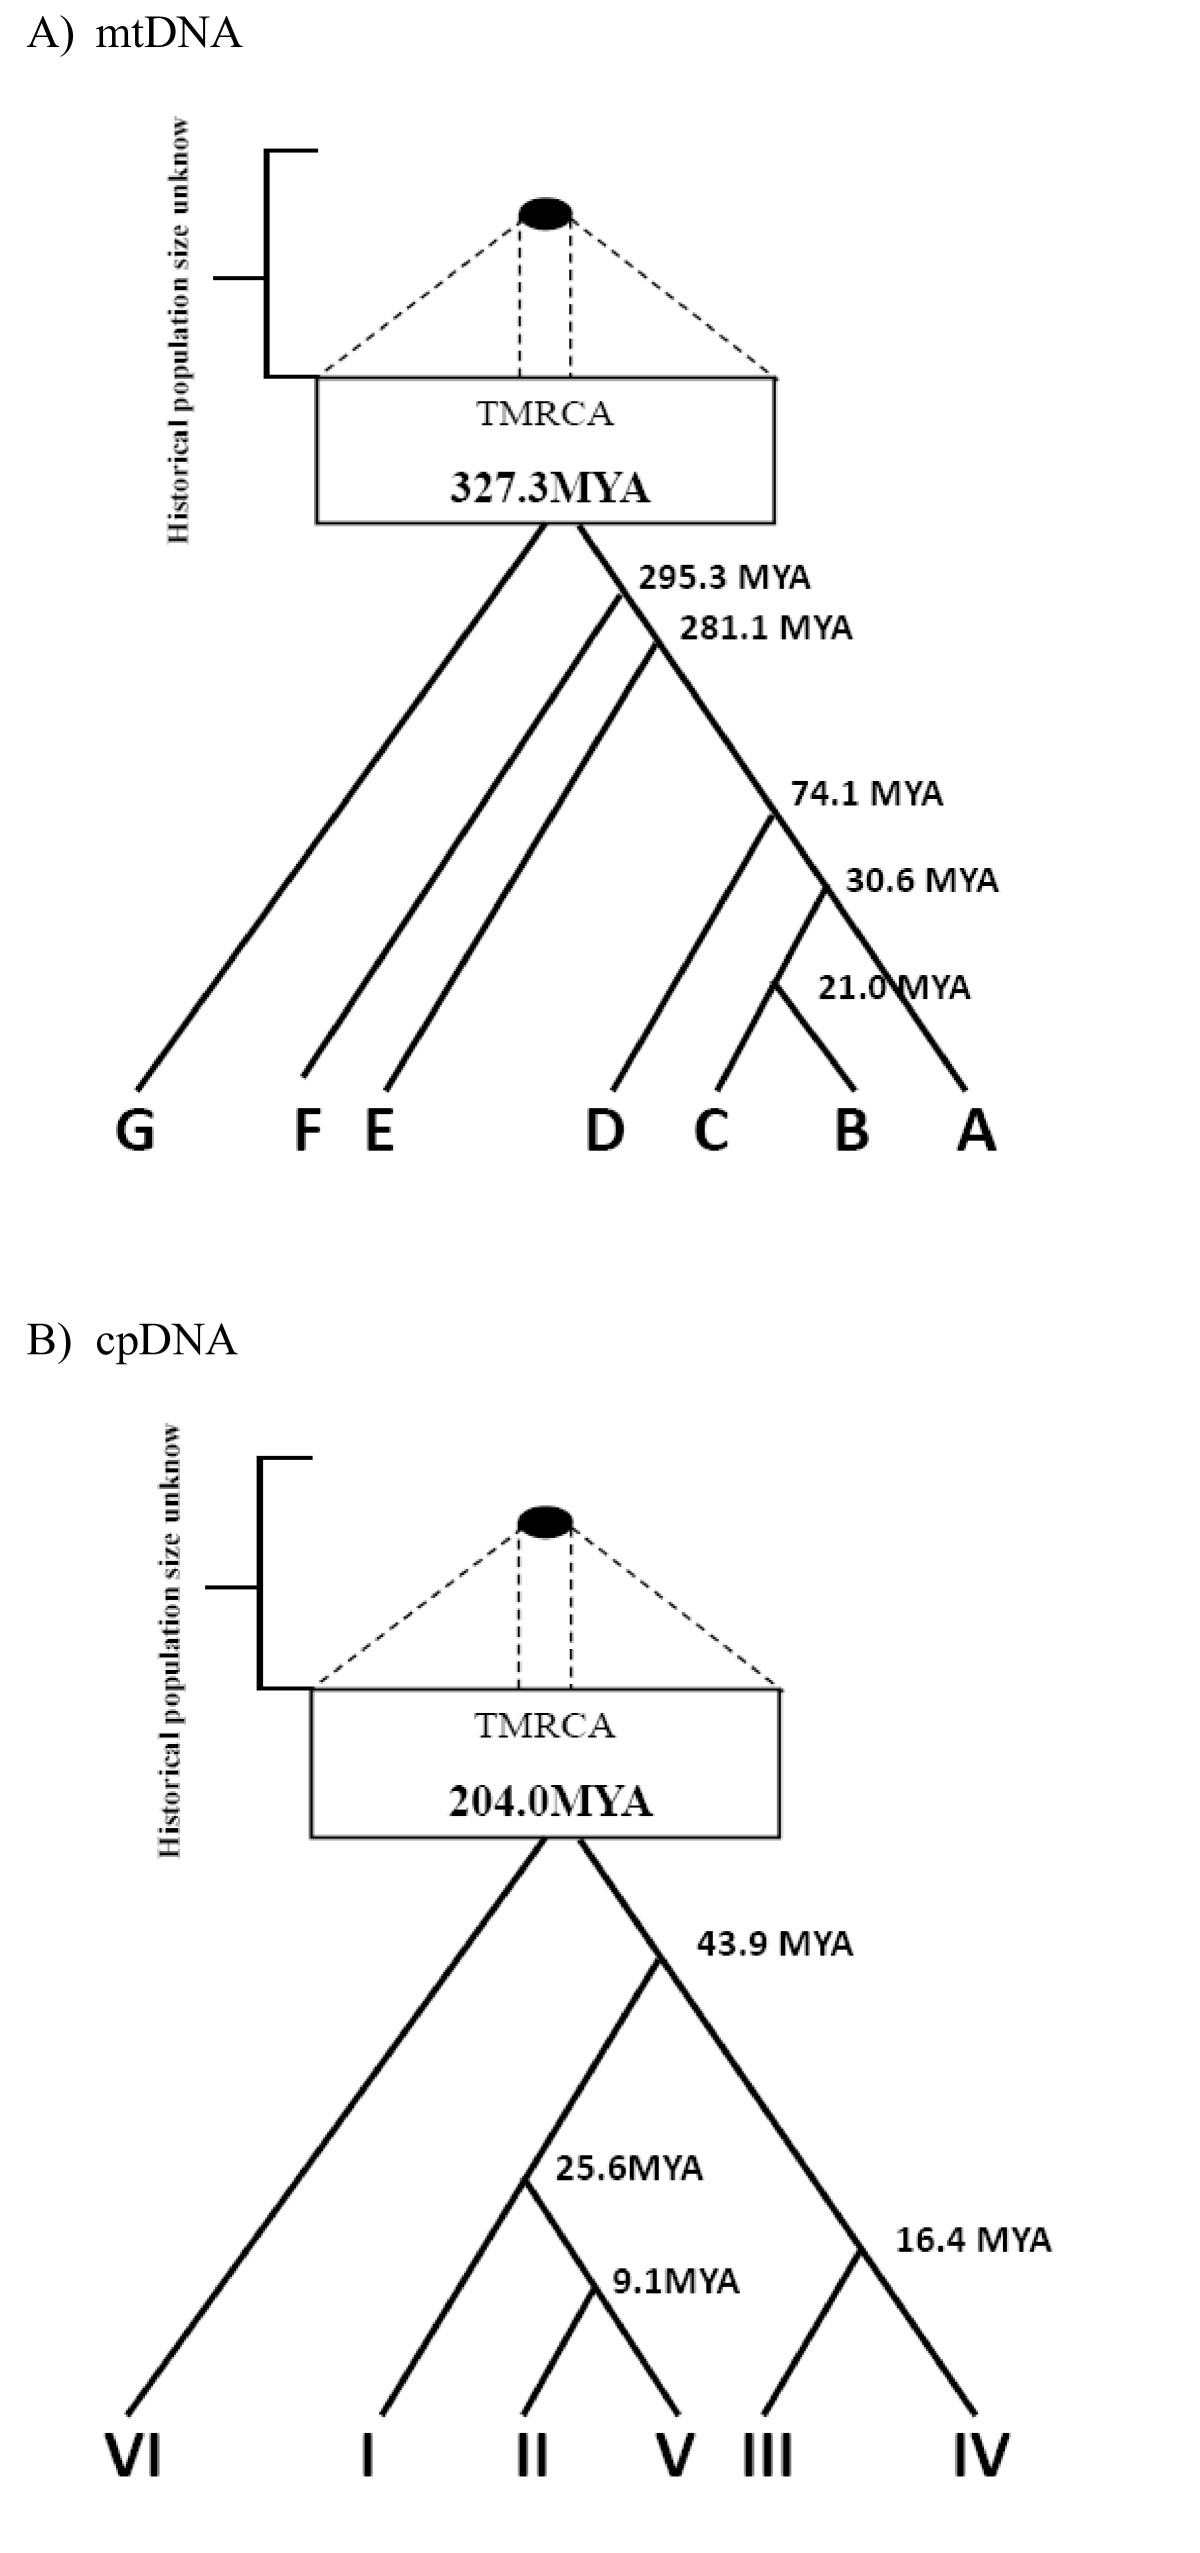 https://static-content.springer.com/image/art%3A10.1186%2F1471-2148-9-161/MediaObjects/12862_2009_Article_1075_Fig9_HTML.jpg